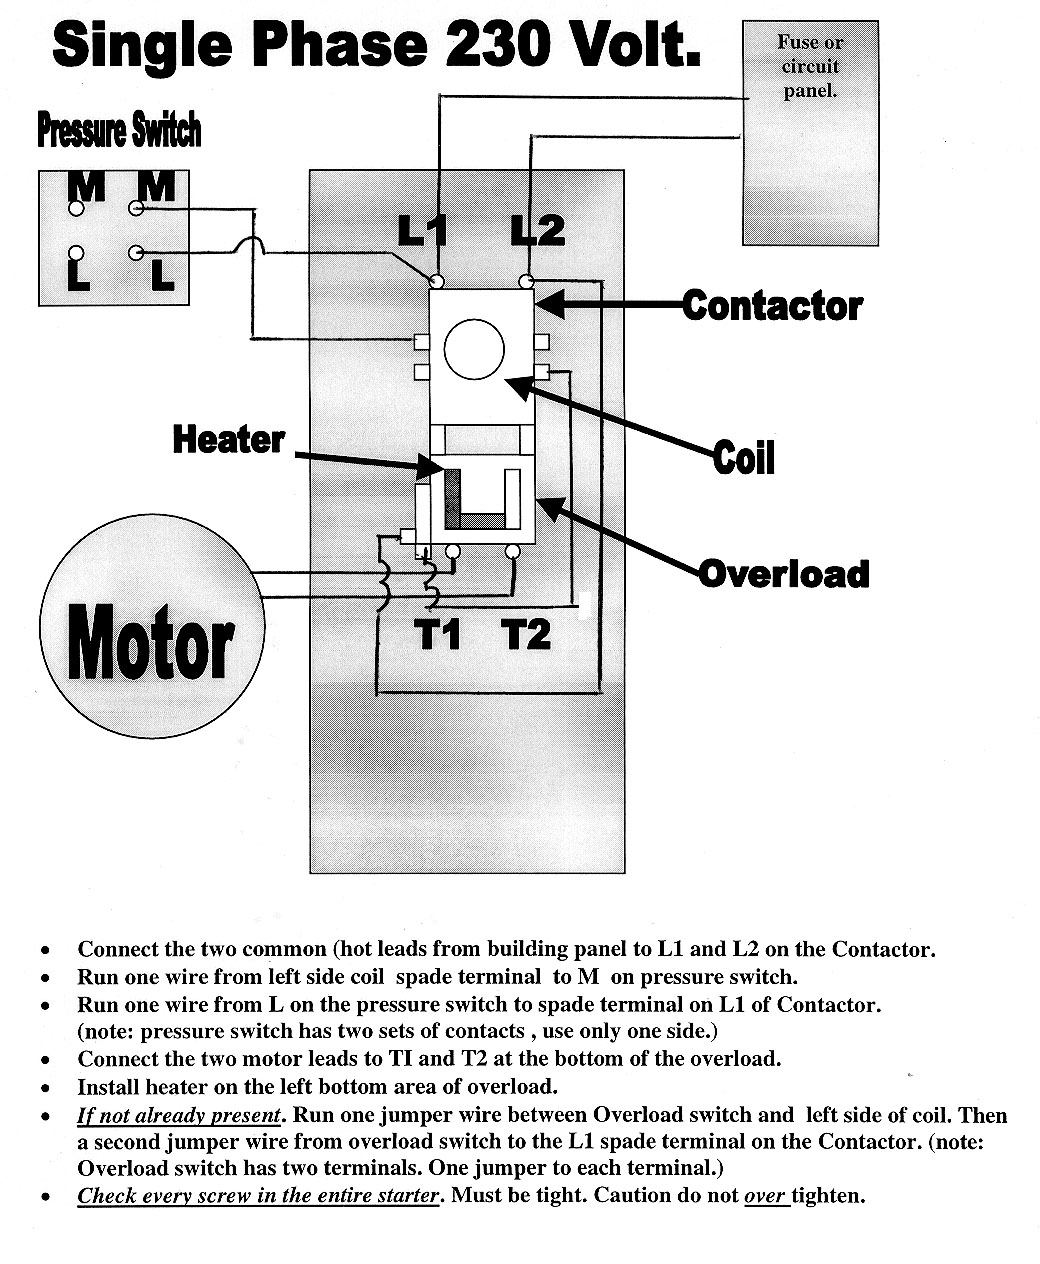 Square d starters click here to viewprint single phase wiring diagrams cheapraybanclubmaster Image collections